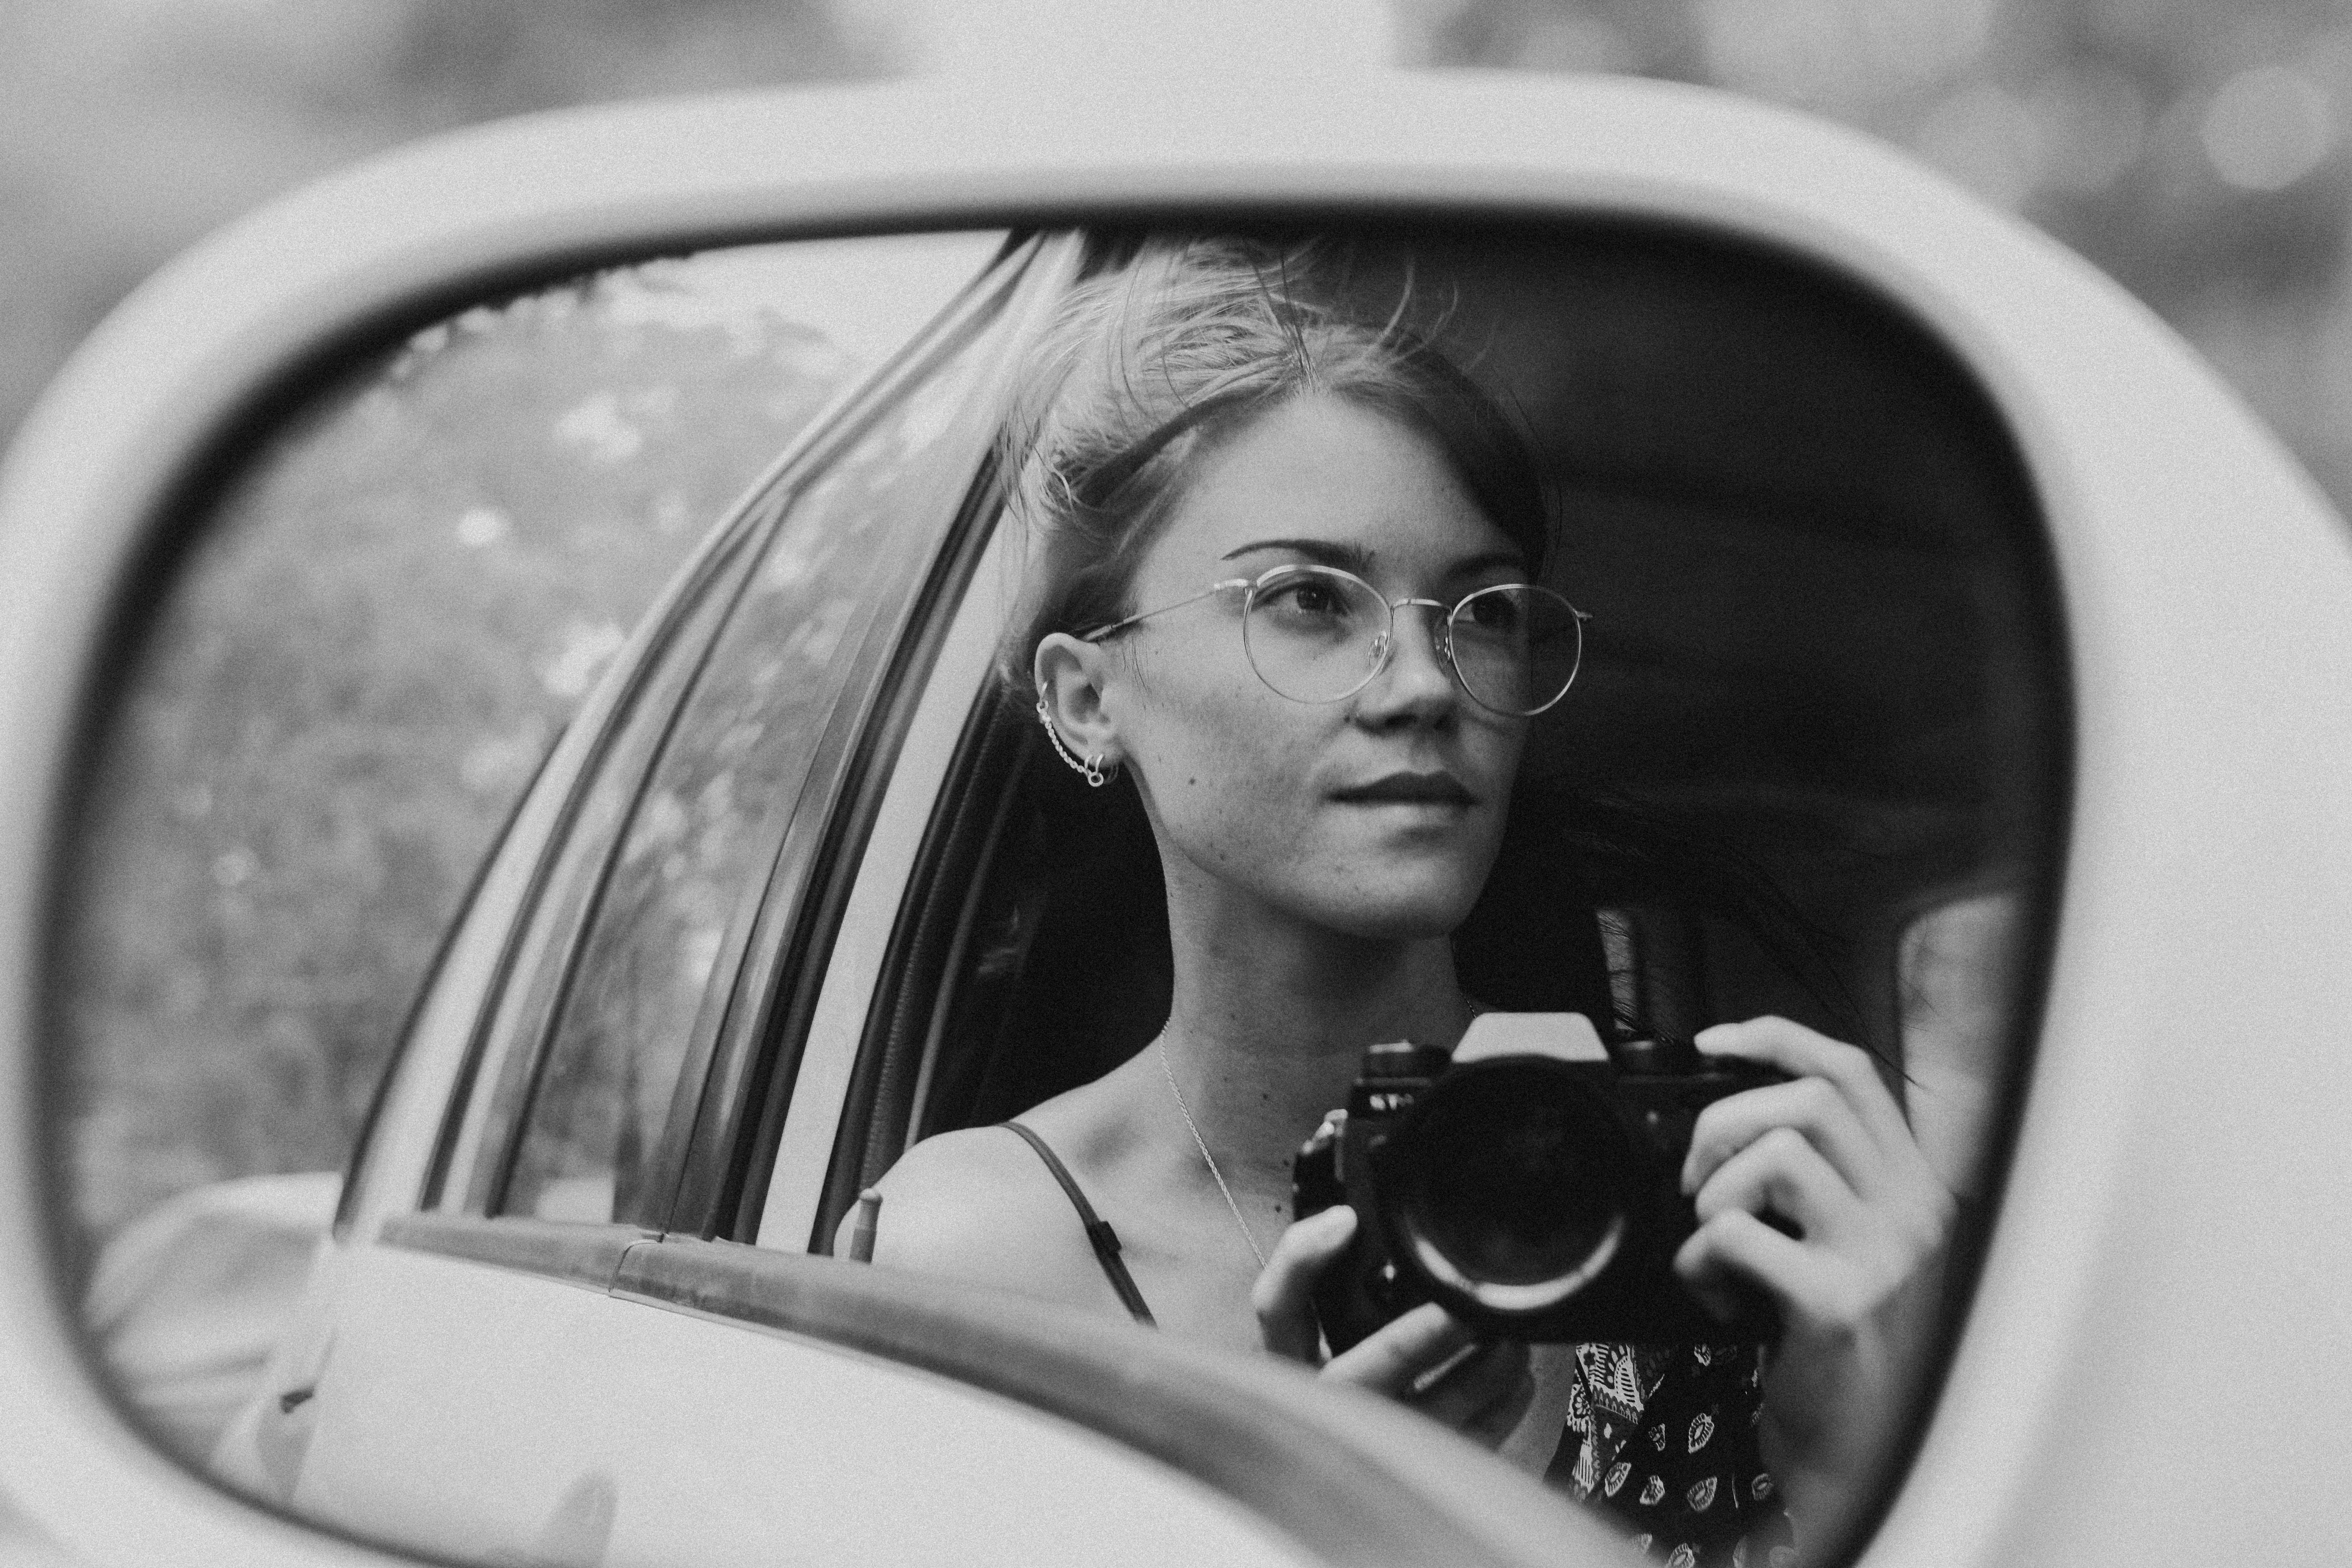 girl taking a picture in a car mirror overcoming fear